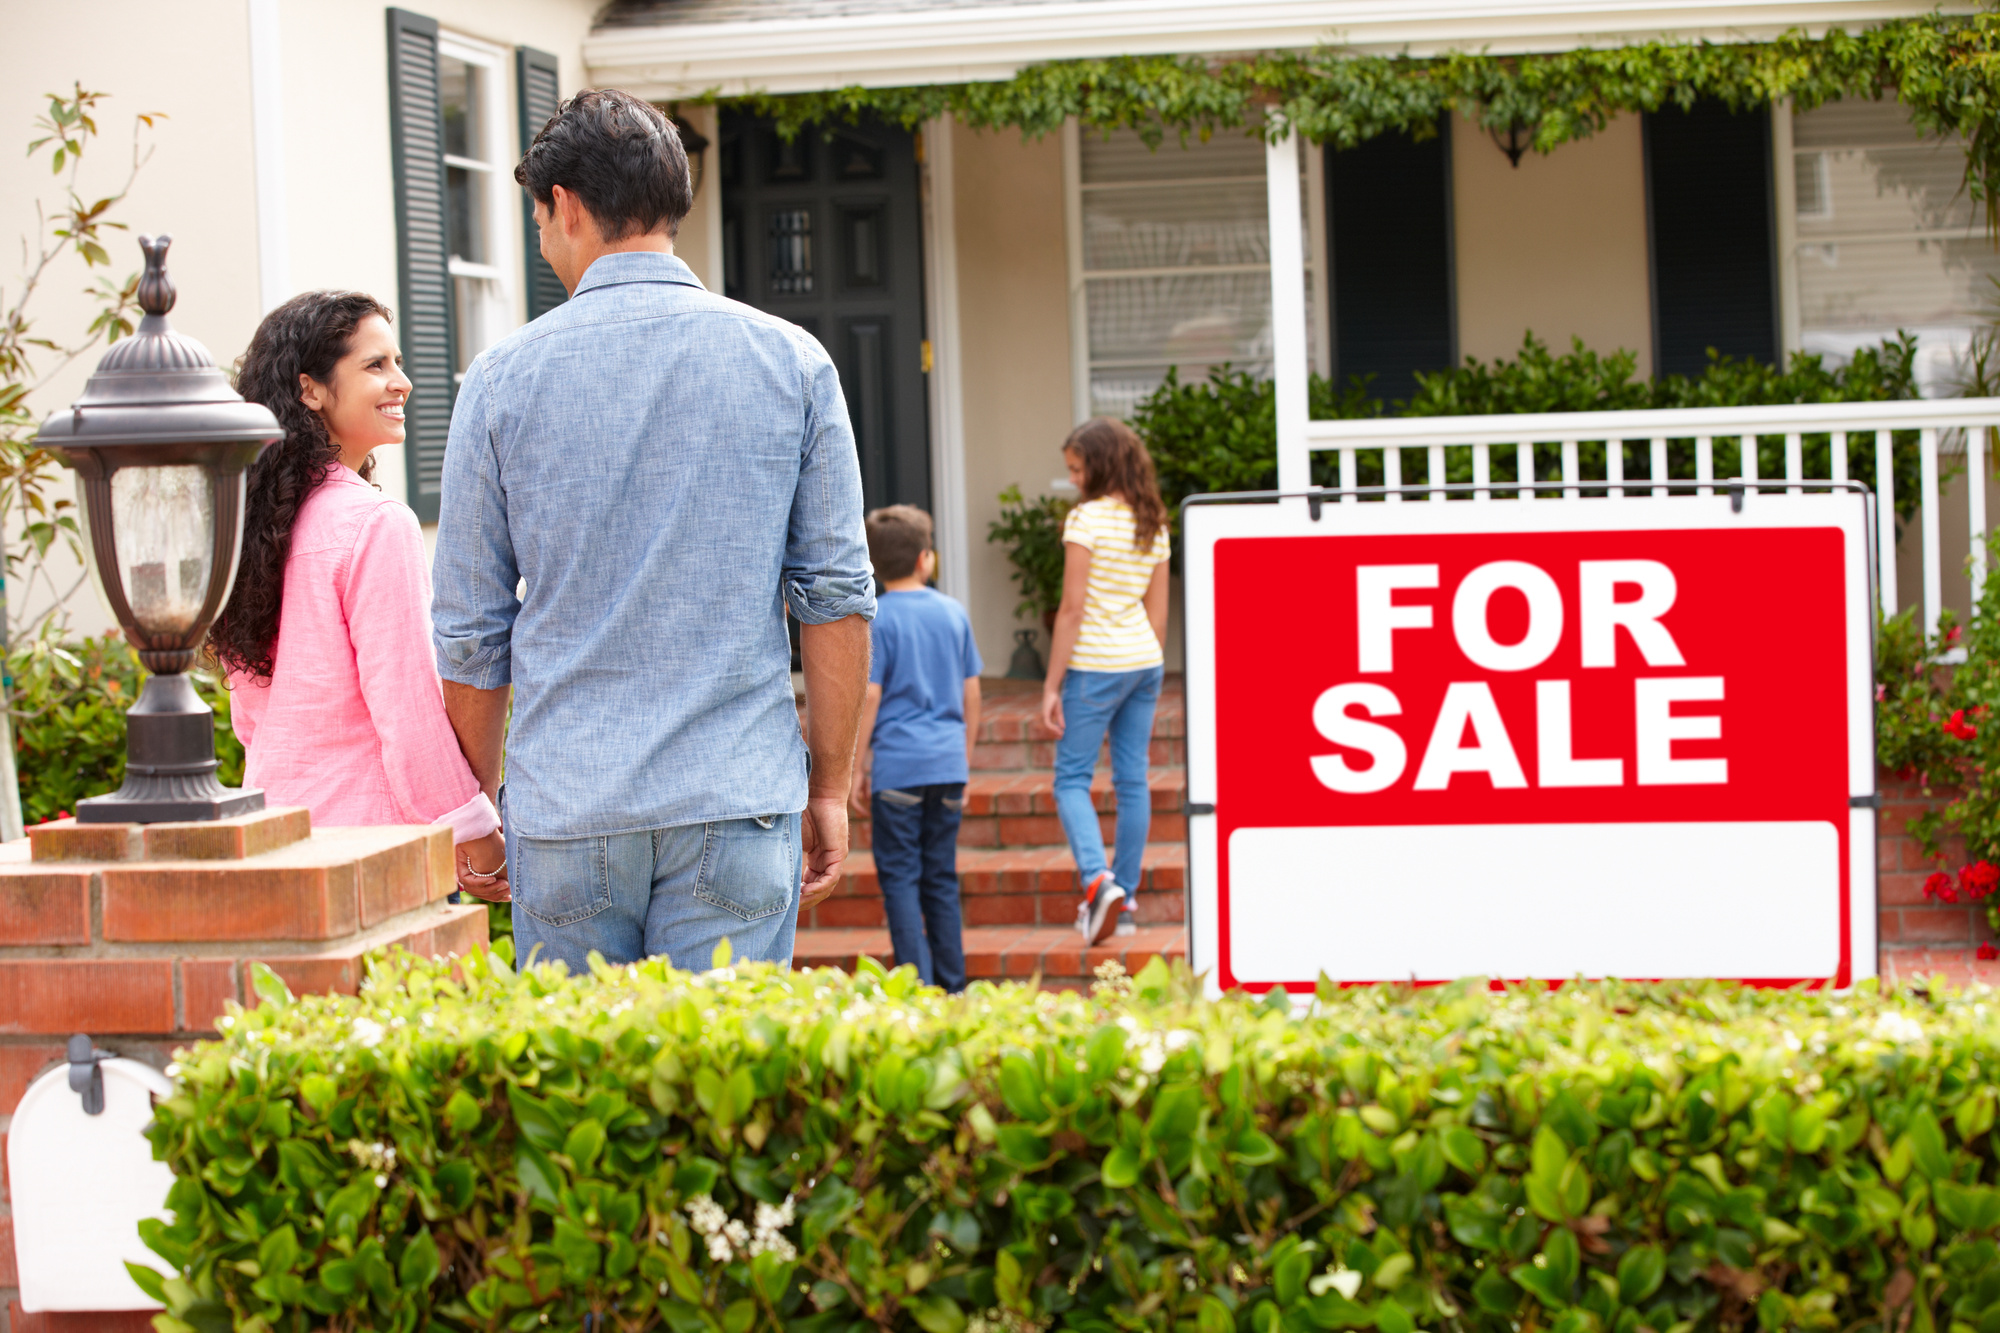 What Makes the Perfect House Listing? Expert Tips for Writing a Listing That Sells